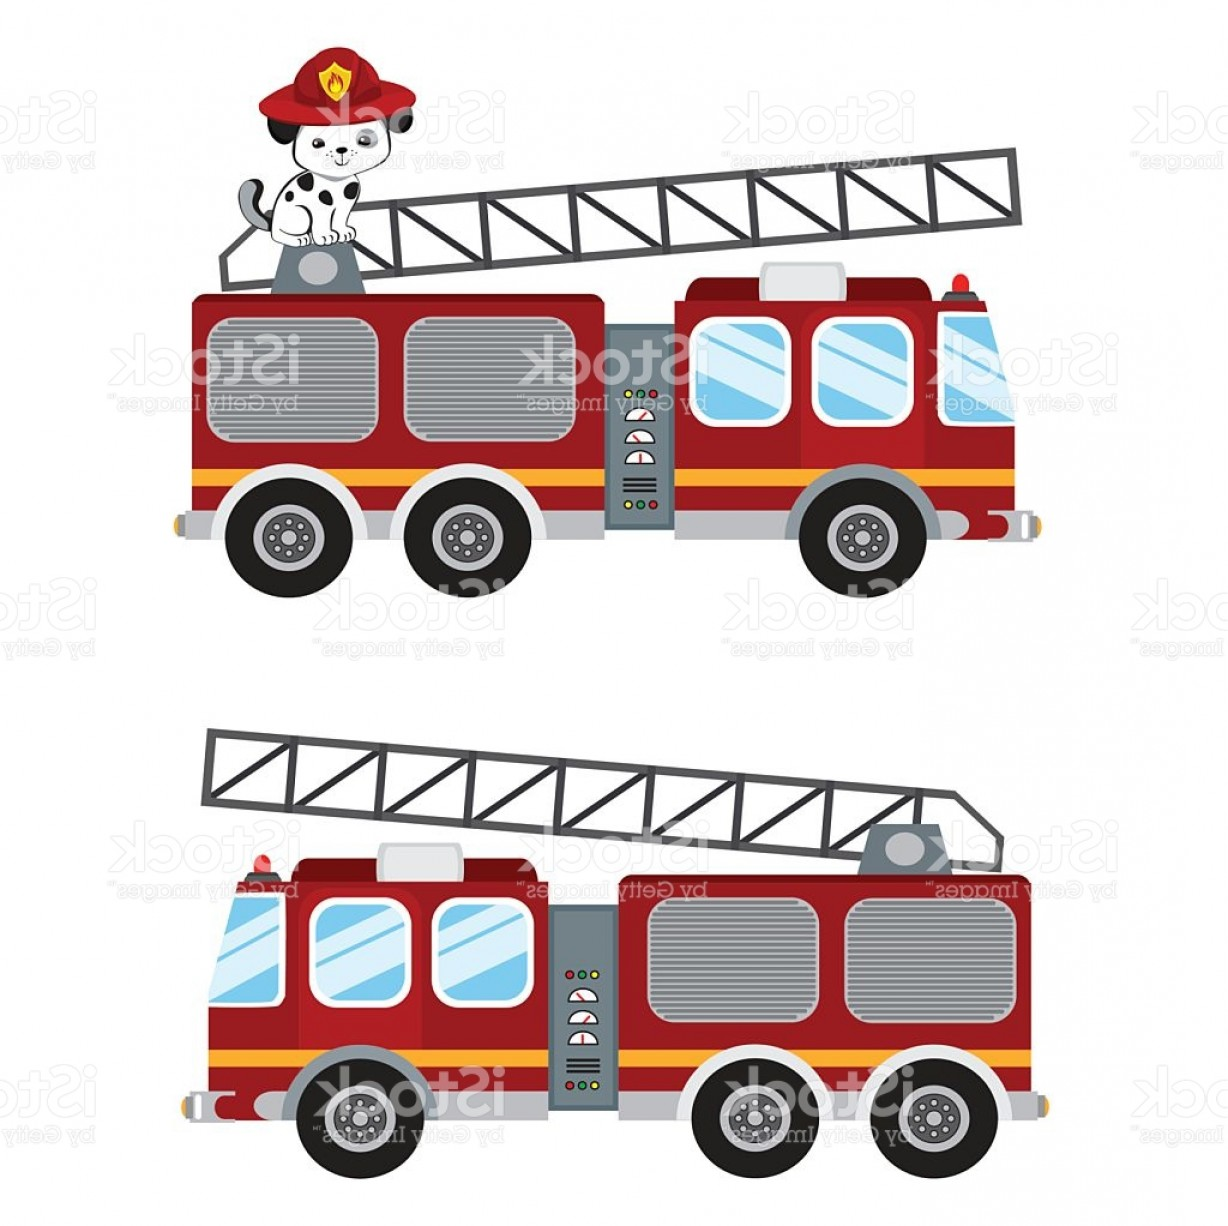 Fire Truck Vector Art: Fire Truck Cartoon Illustration And Cute Puppy Firefighter Gm